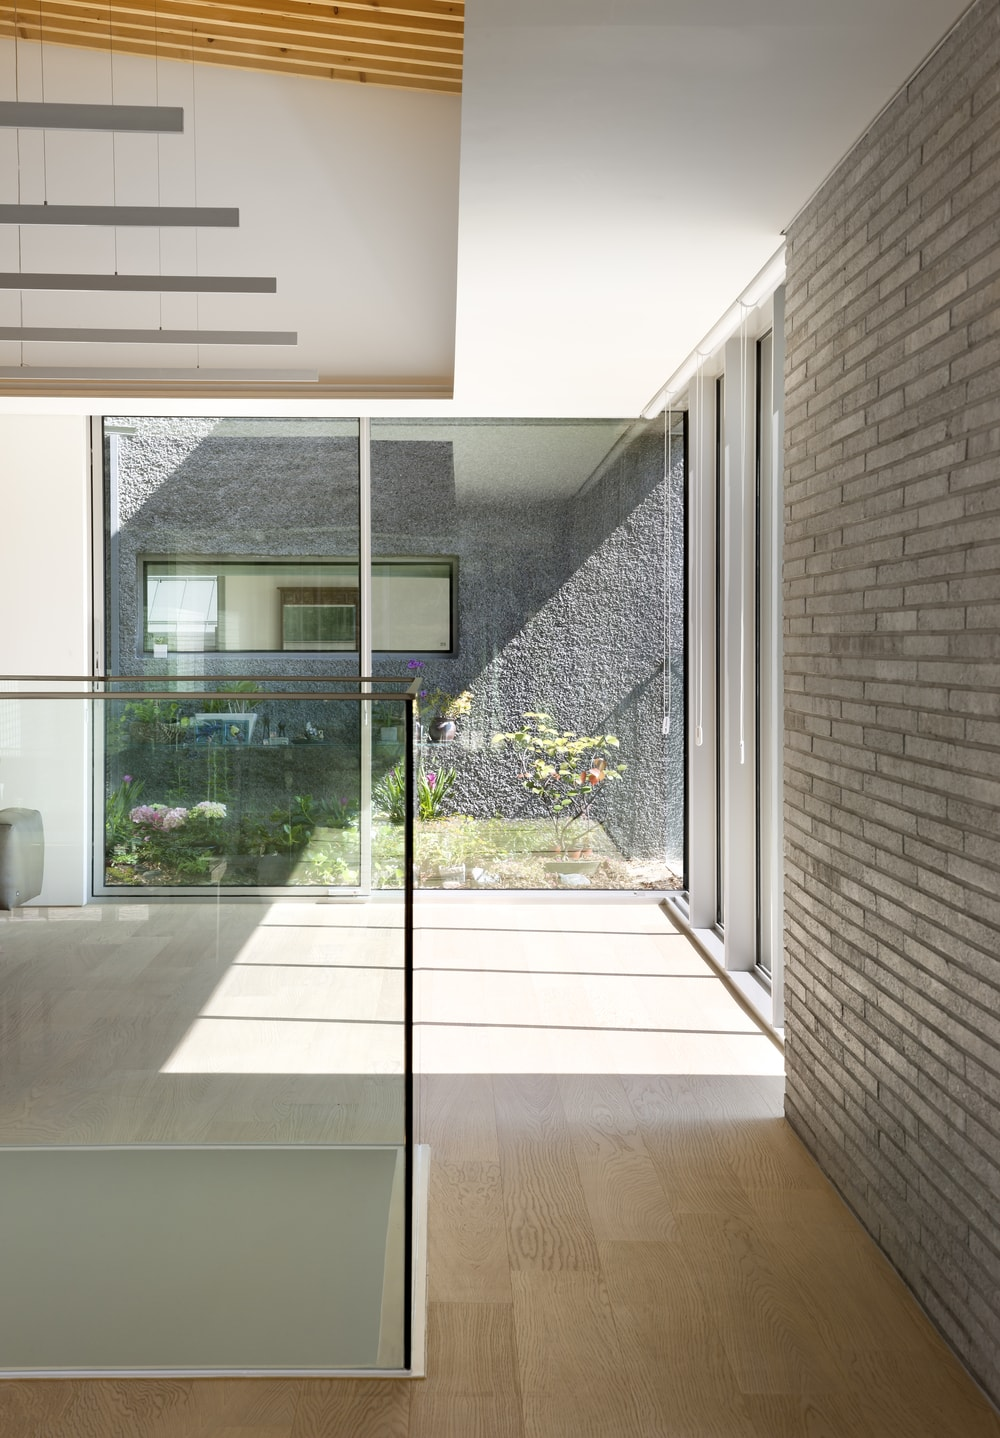 This is an interior view of the house with glass walls and a small garden right outside.